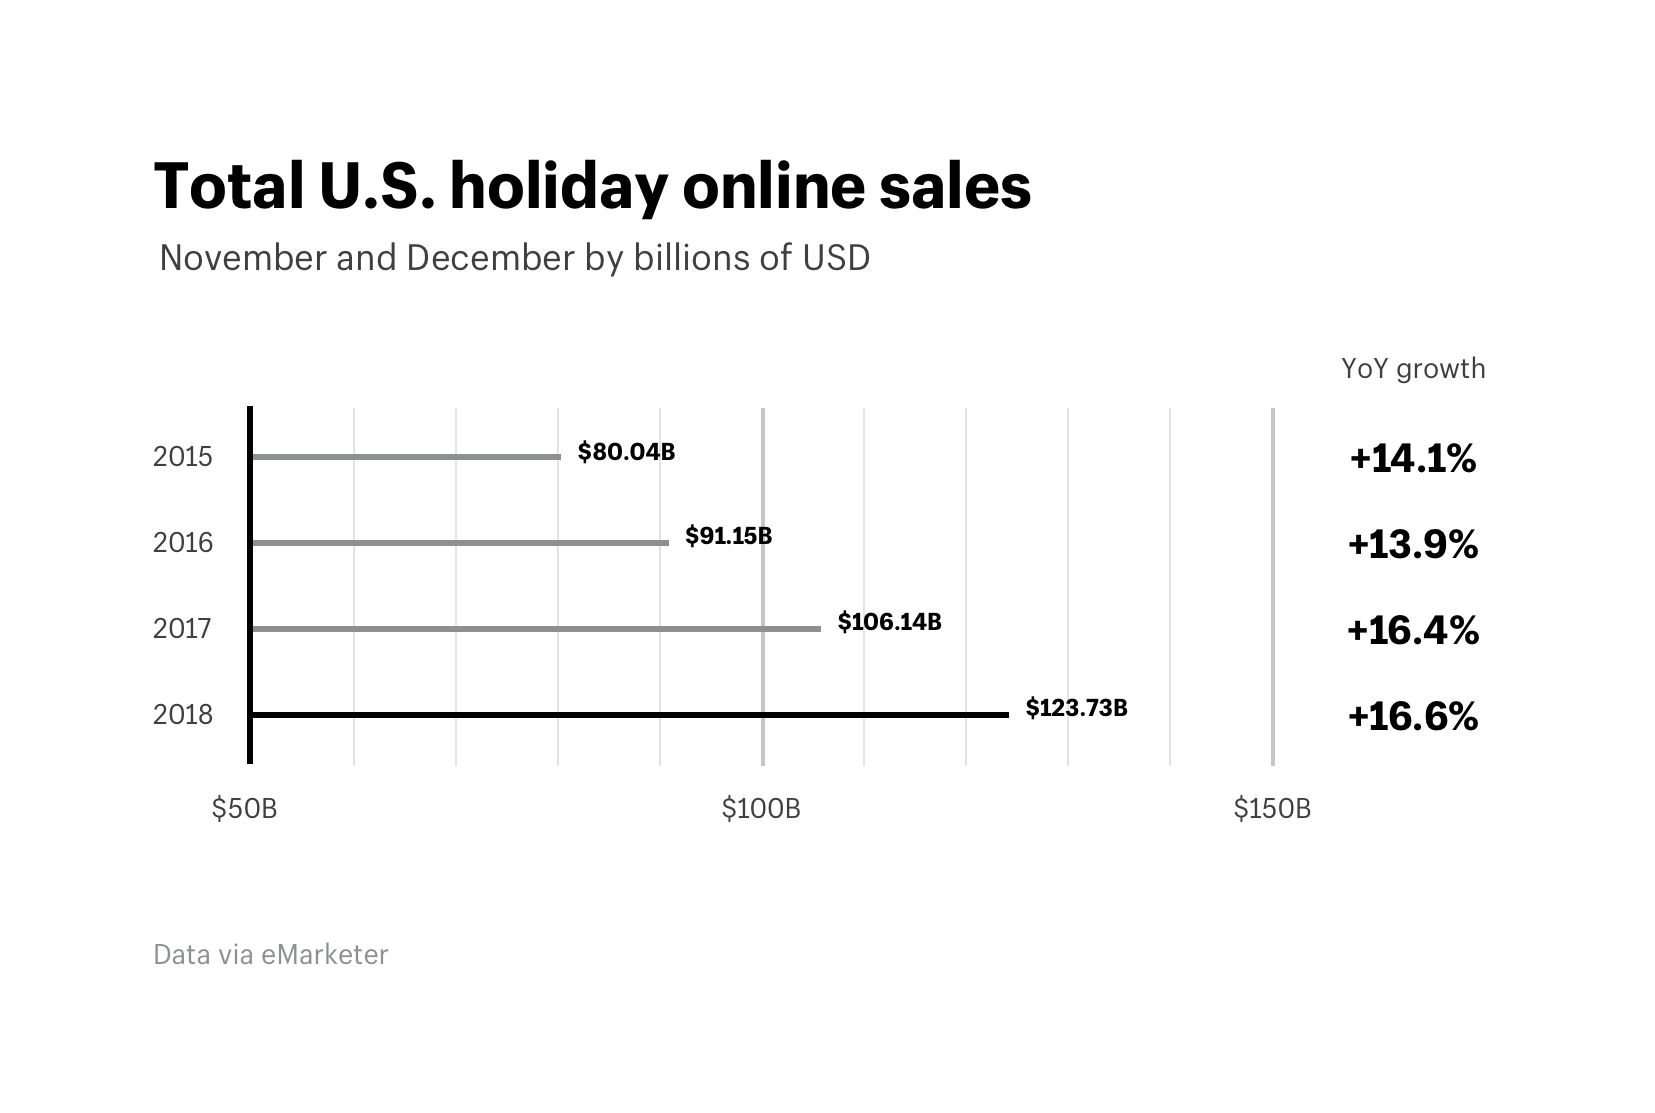 Total U.S. holiday online sales during Black Friday 2018